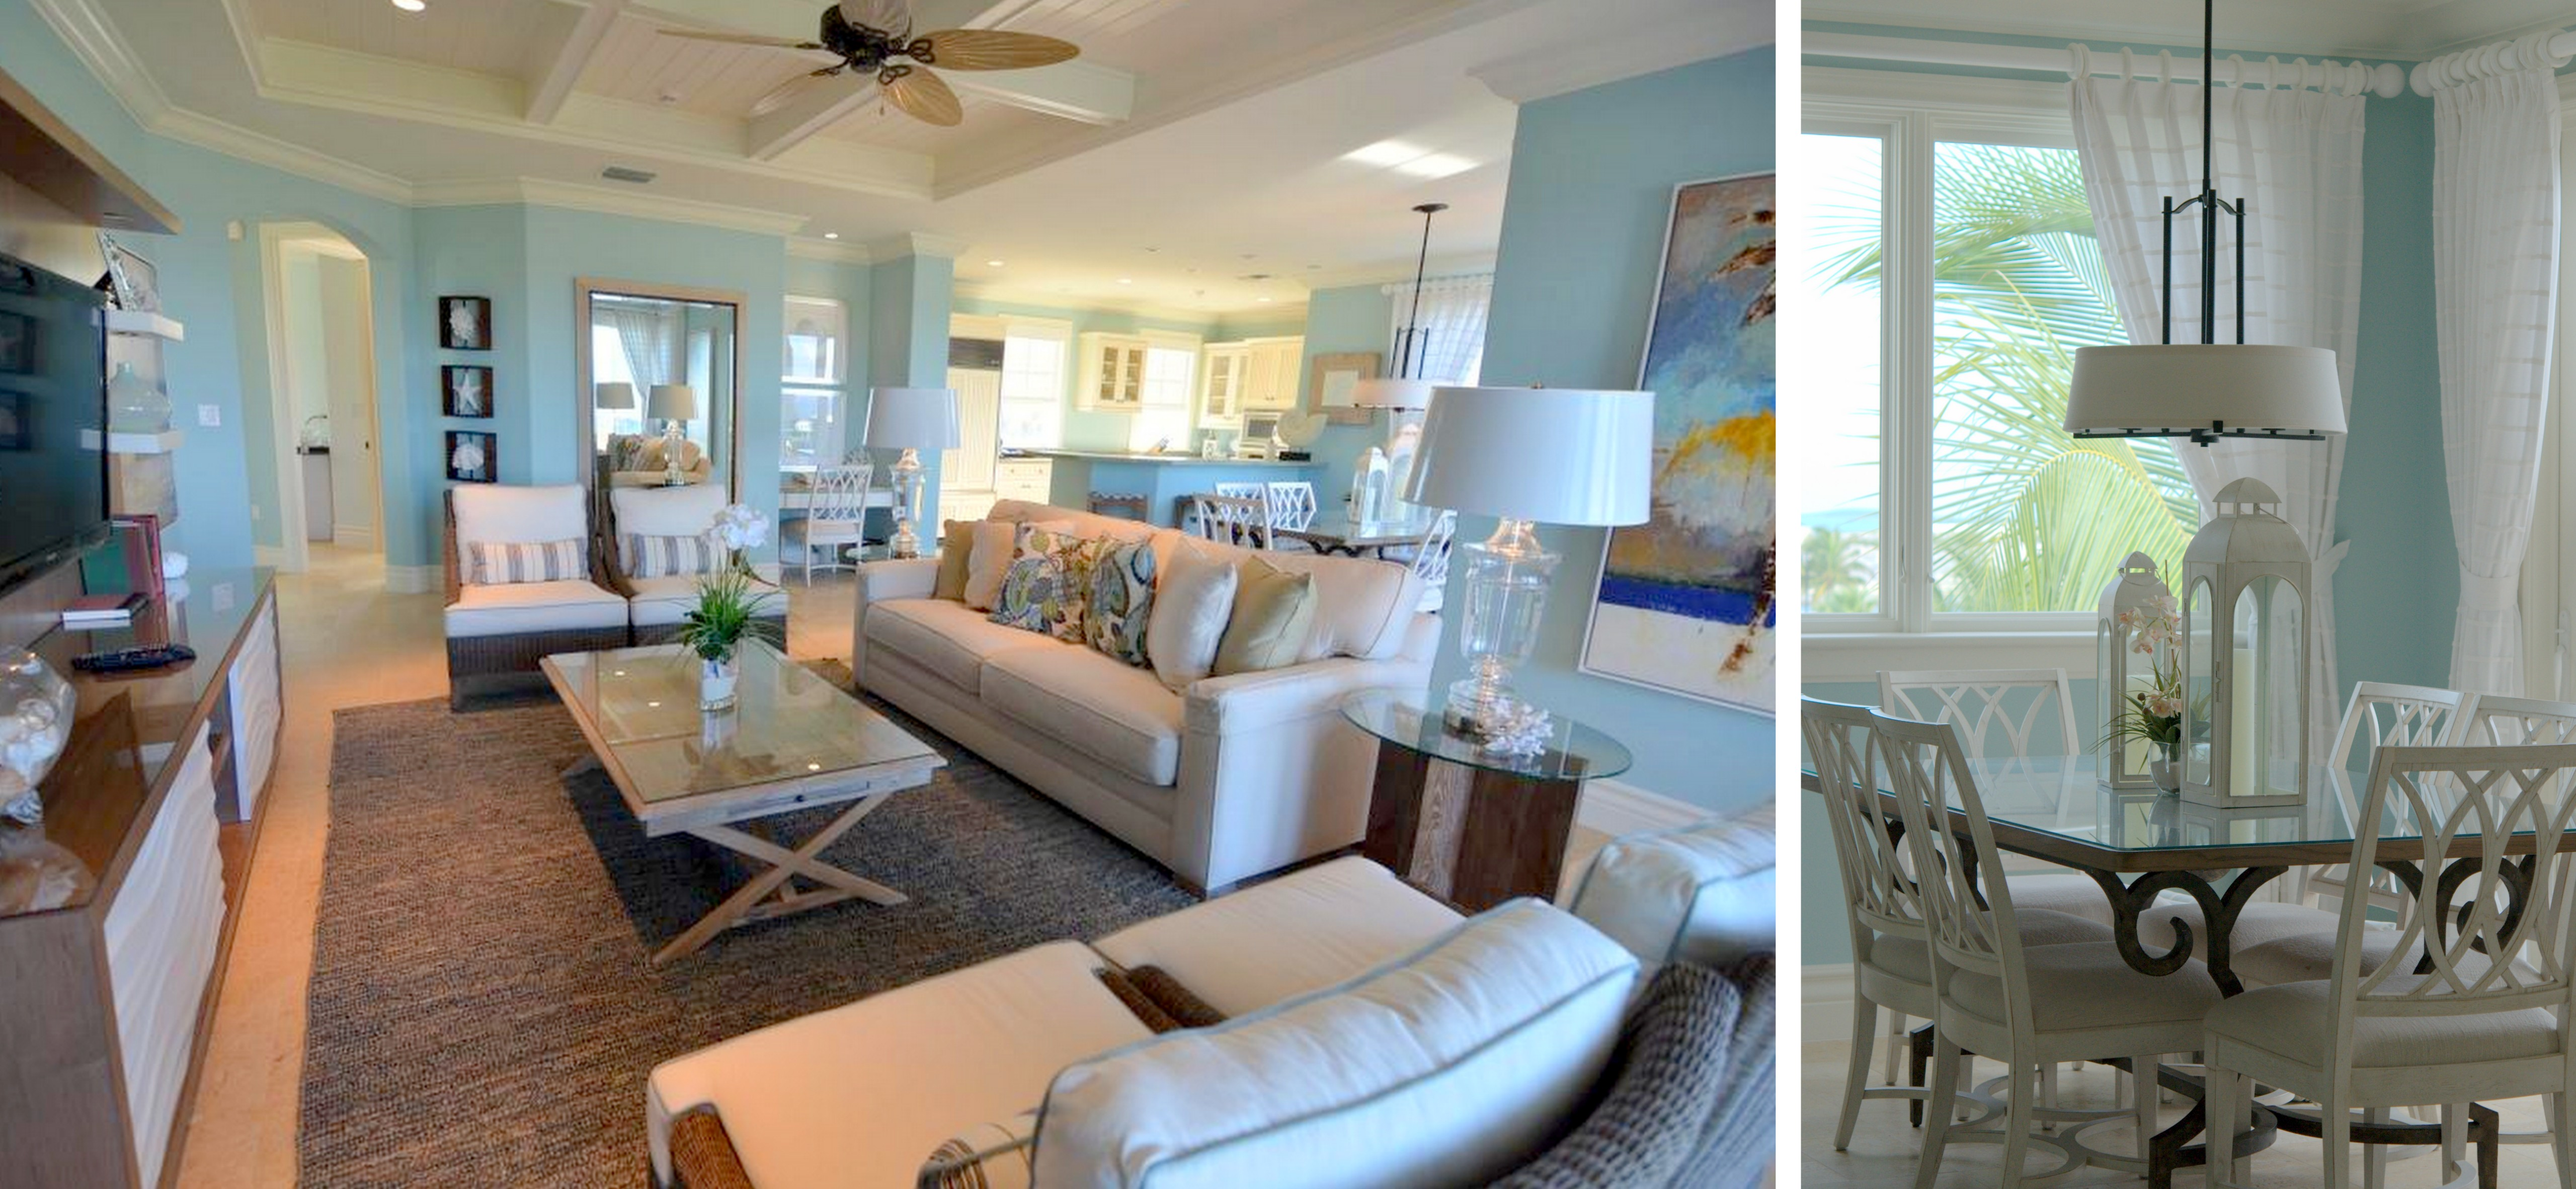 Grand Isle Resort Living Room_Great Exuma Bahamas